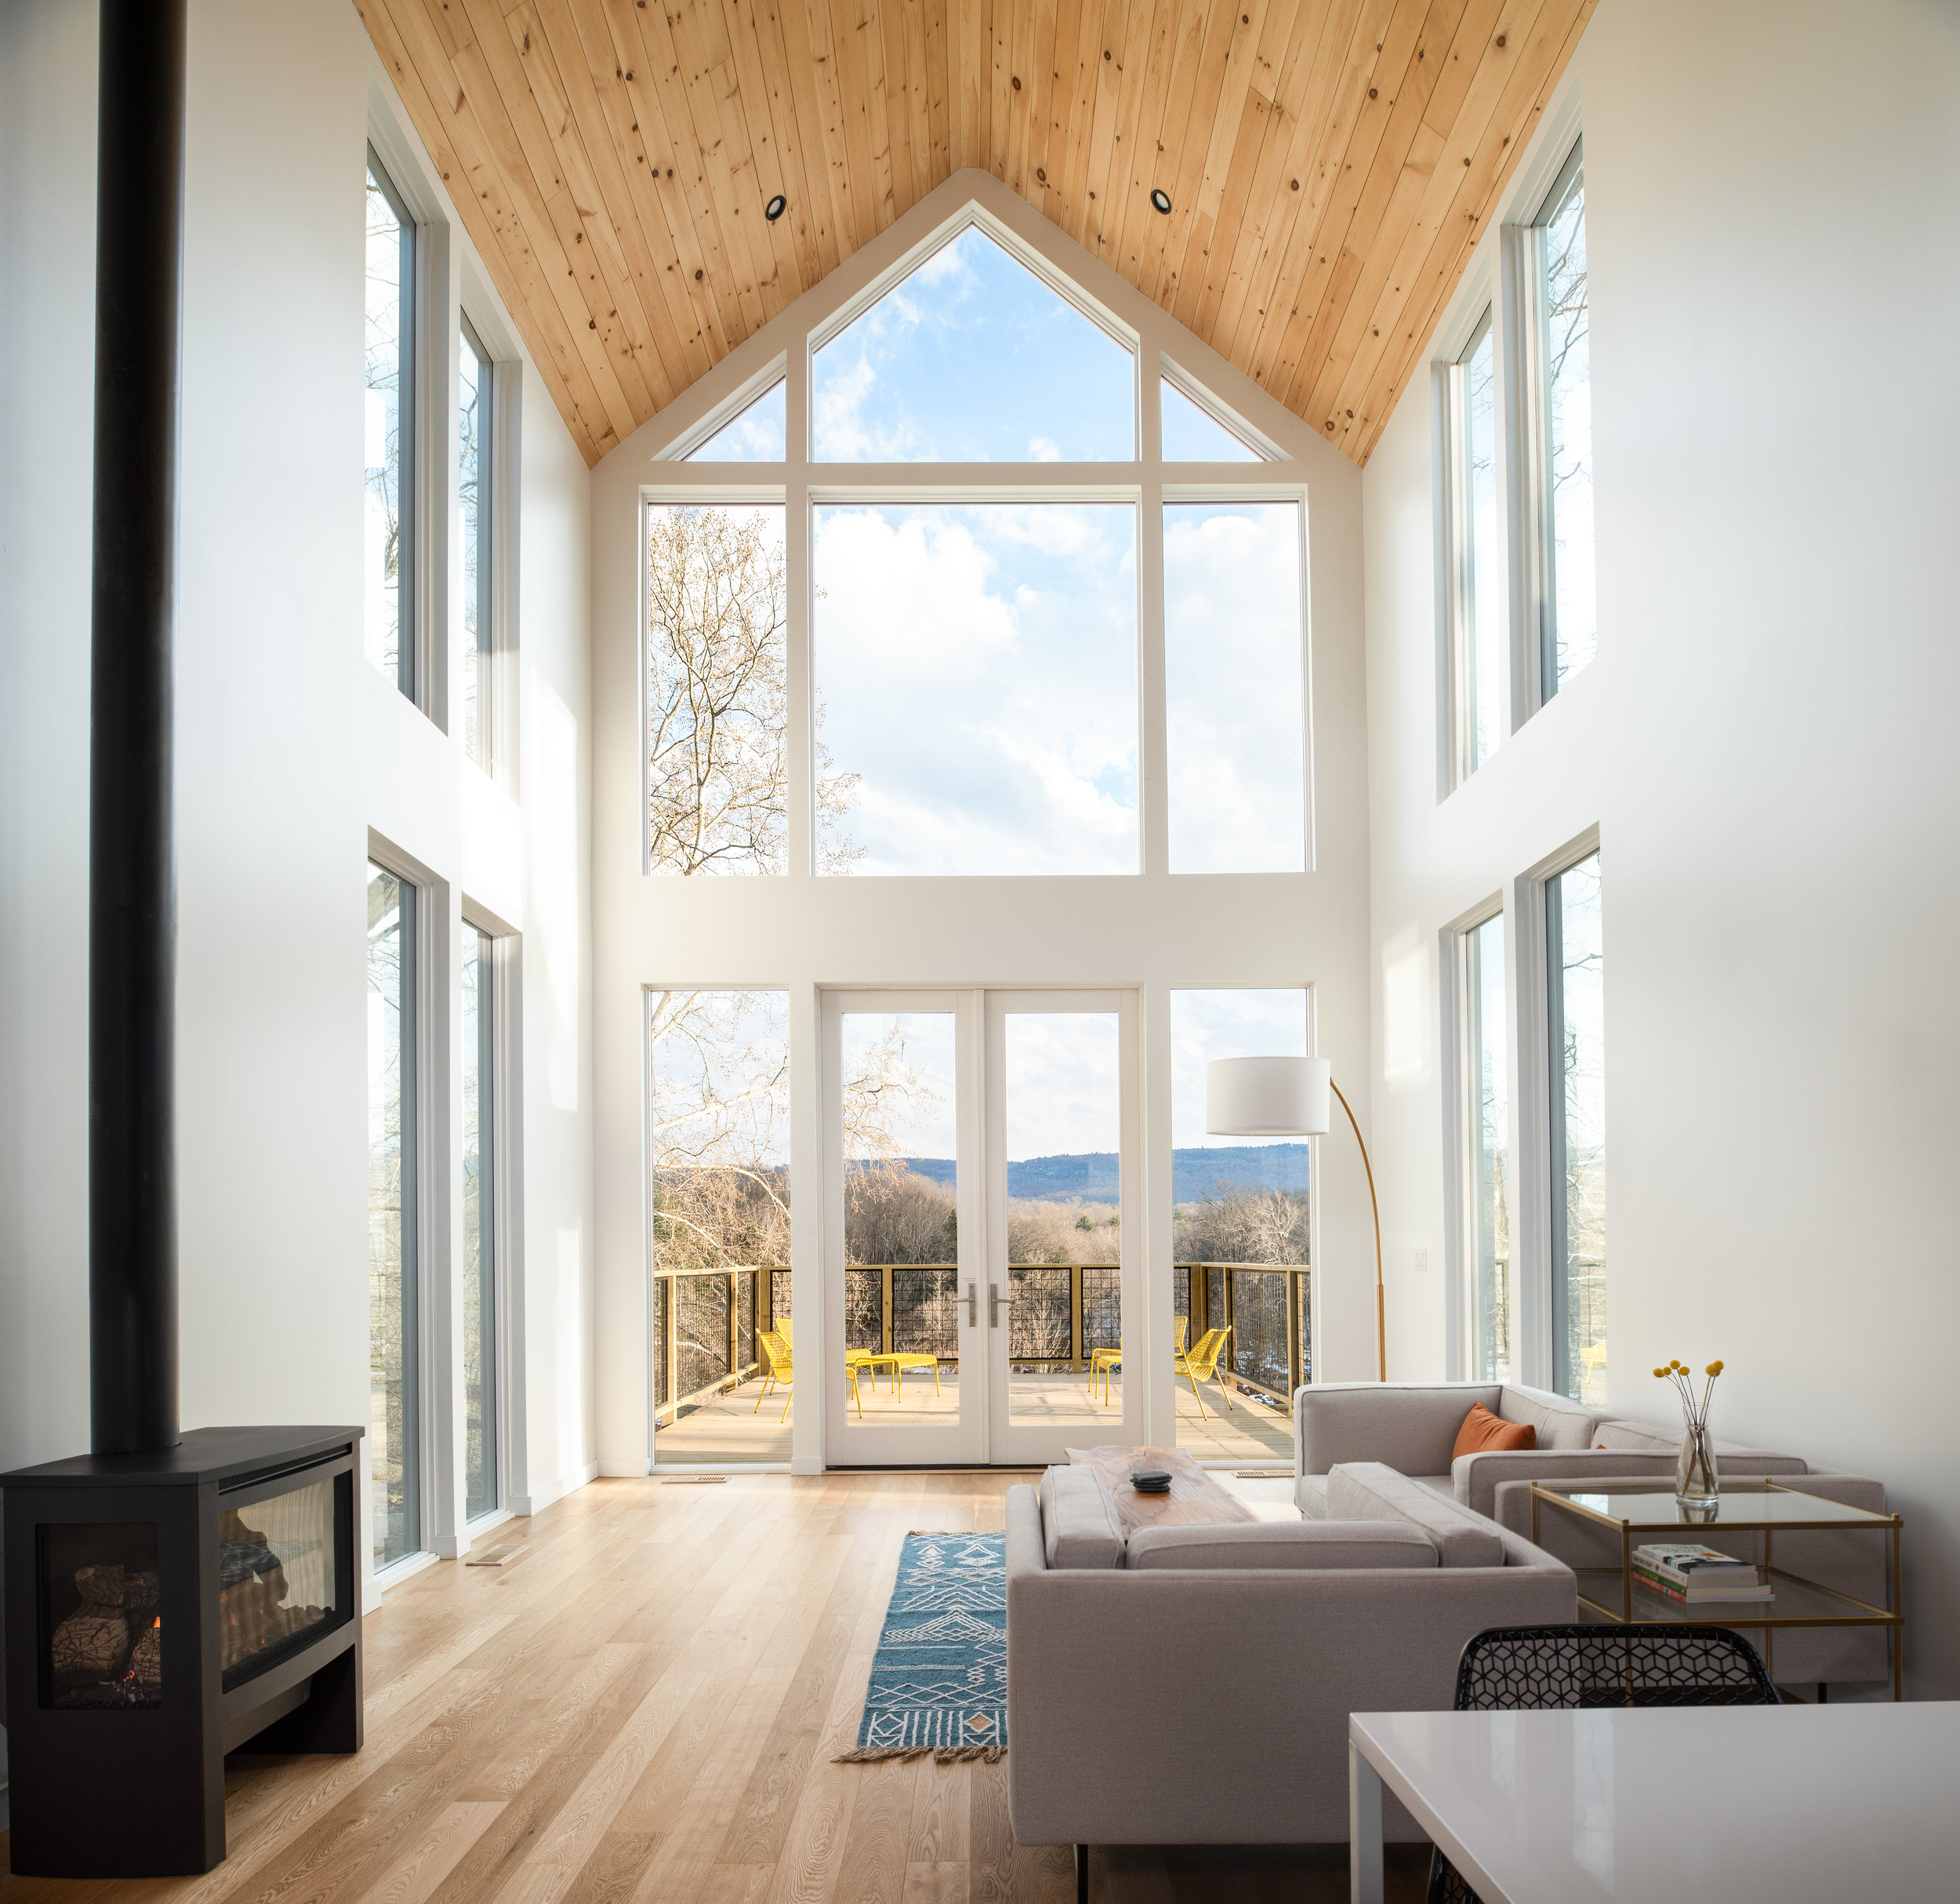 Incredible views from every room, but the most impressive has to be from the main living area through these gorgeous floor to ceiling windows.